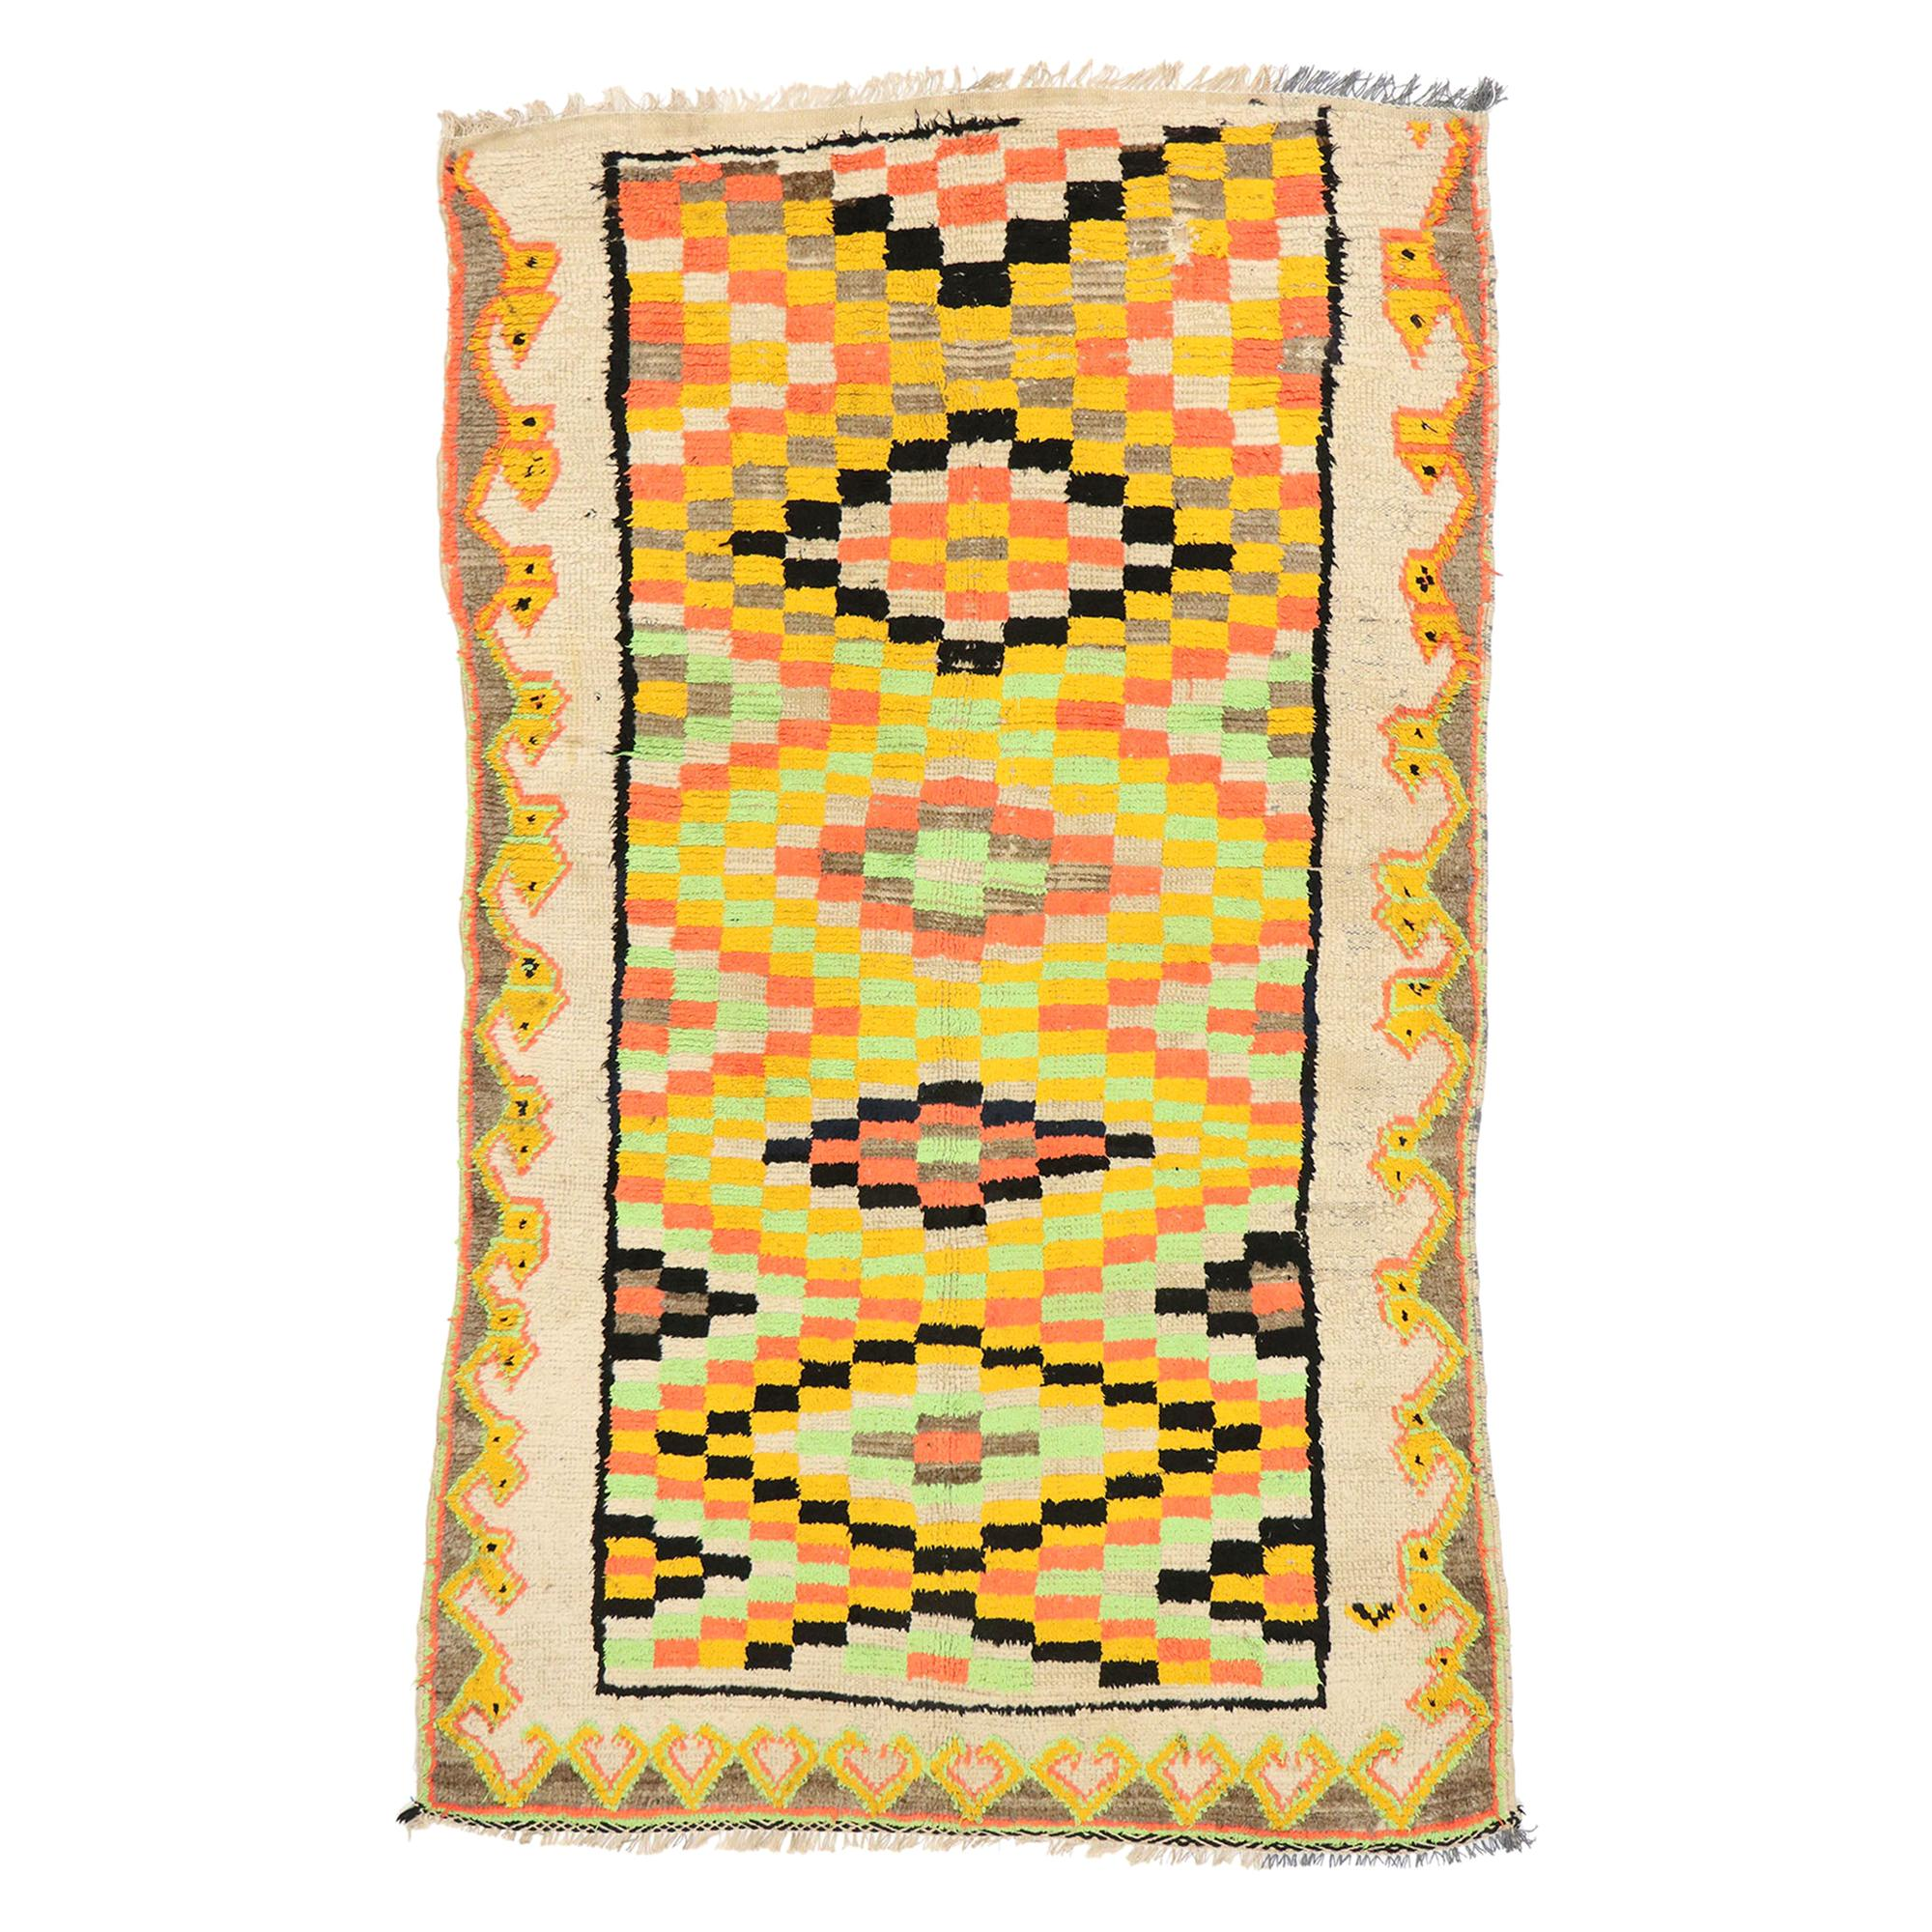 Bold Colored Vintage Berber Moroccan Rug with Cubism Style